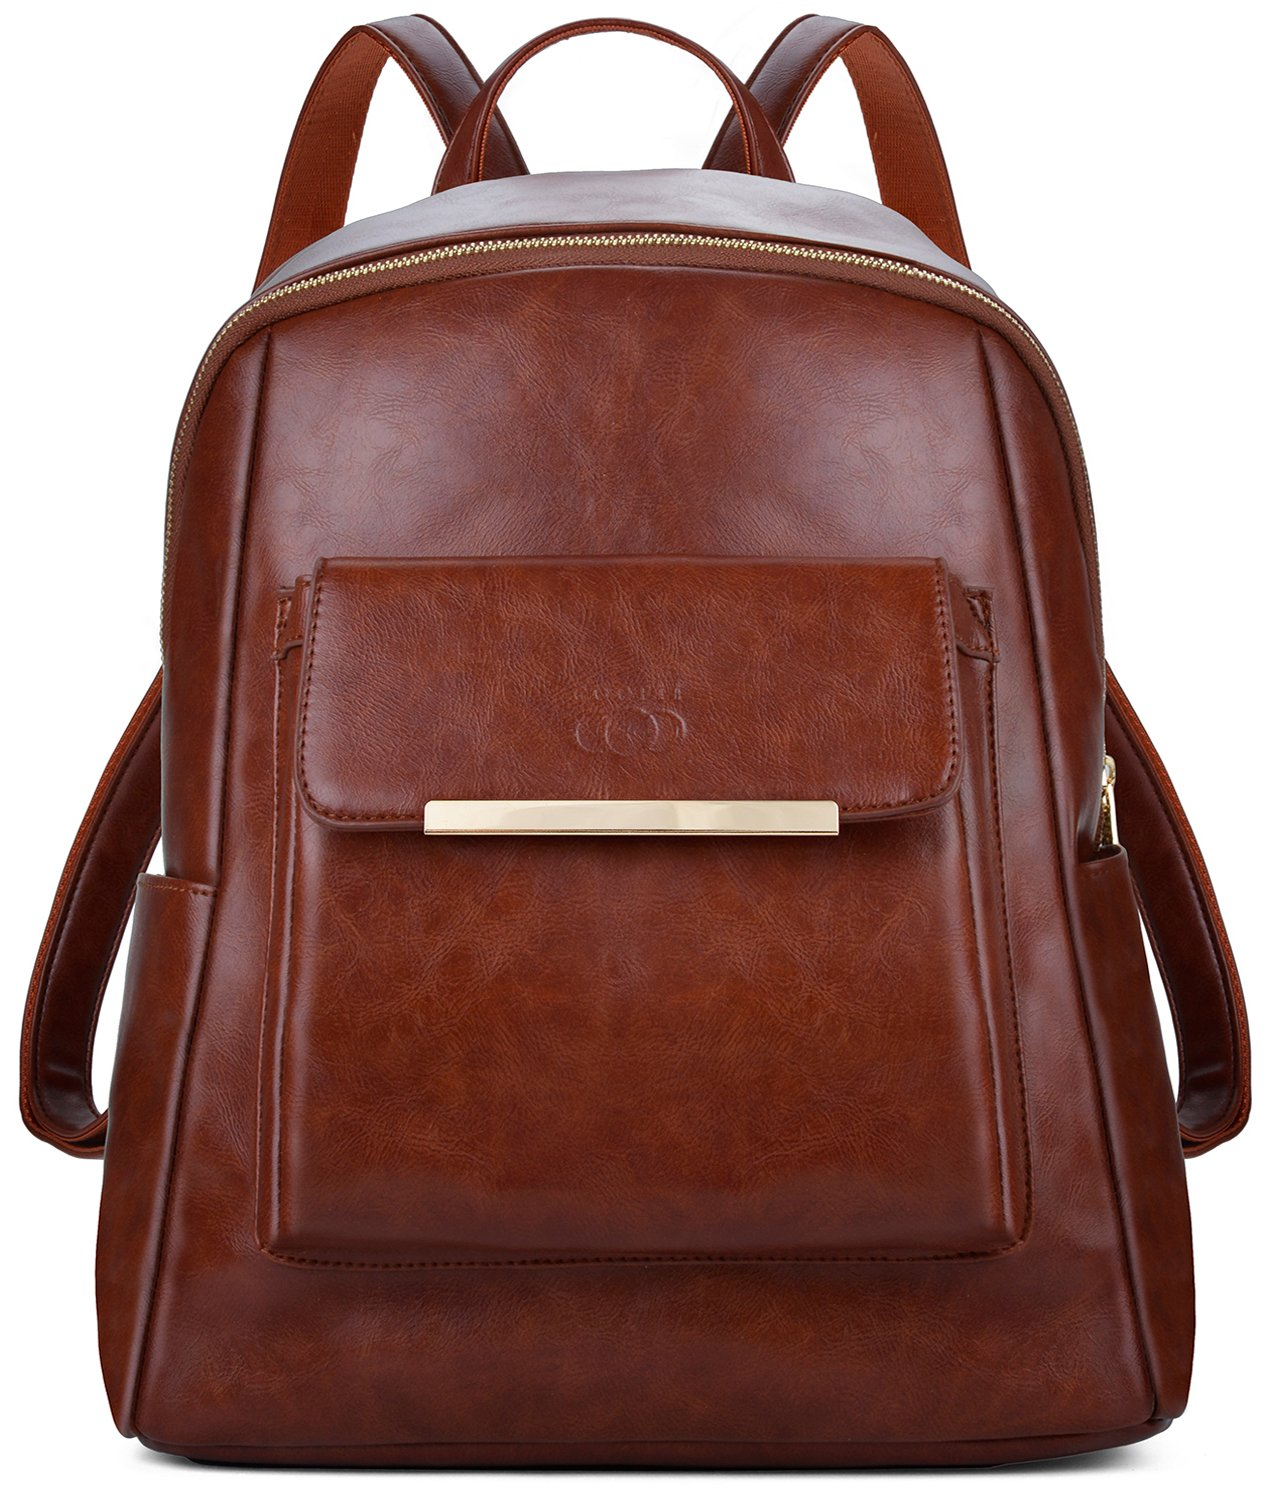 COOFIT Leather Backpack for Girls, Waterproof Fashion Backpack, Casual Daypack (Brown)